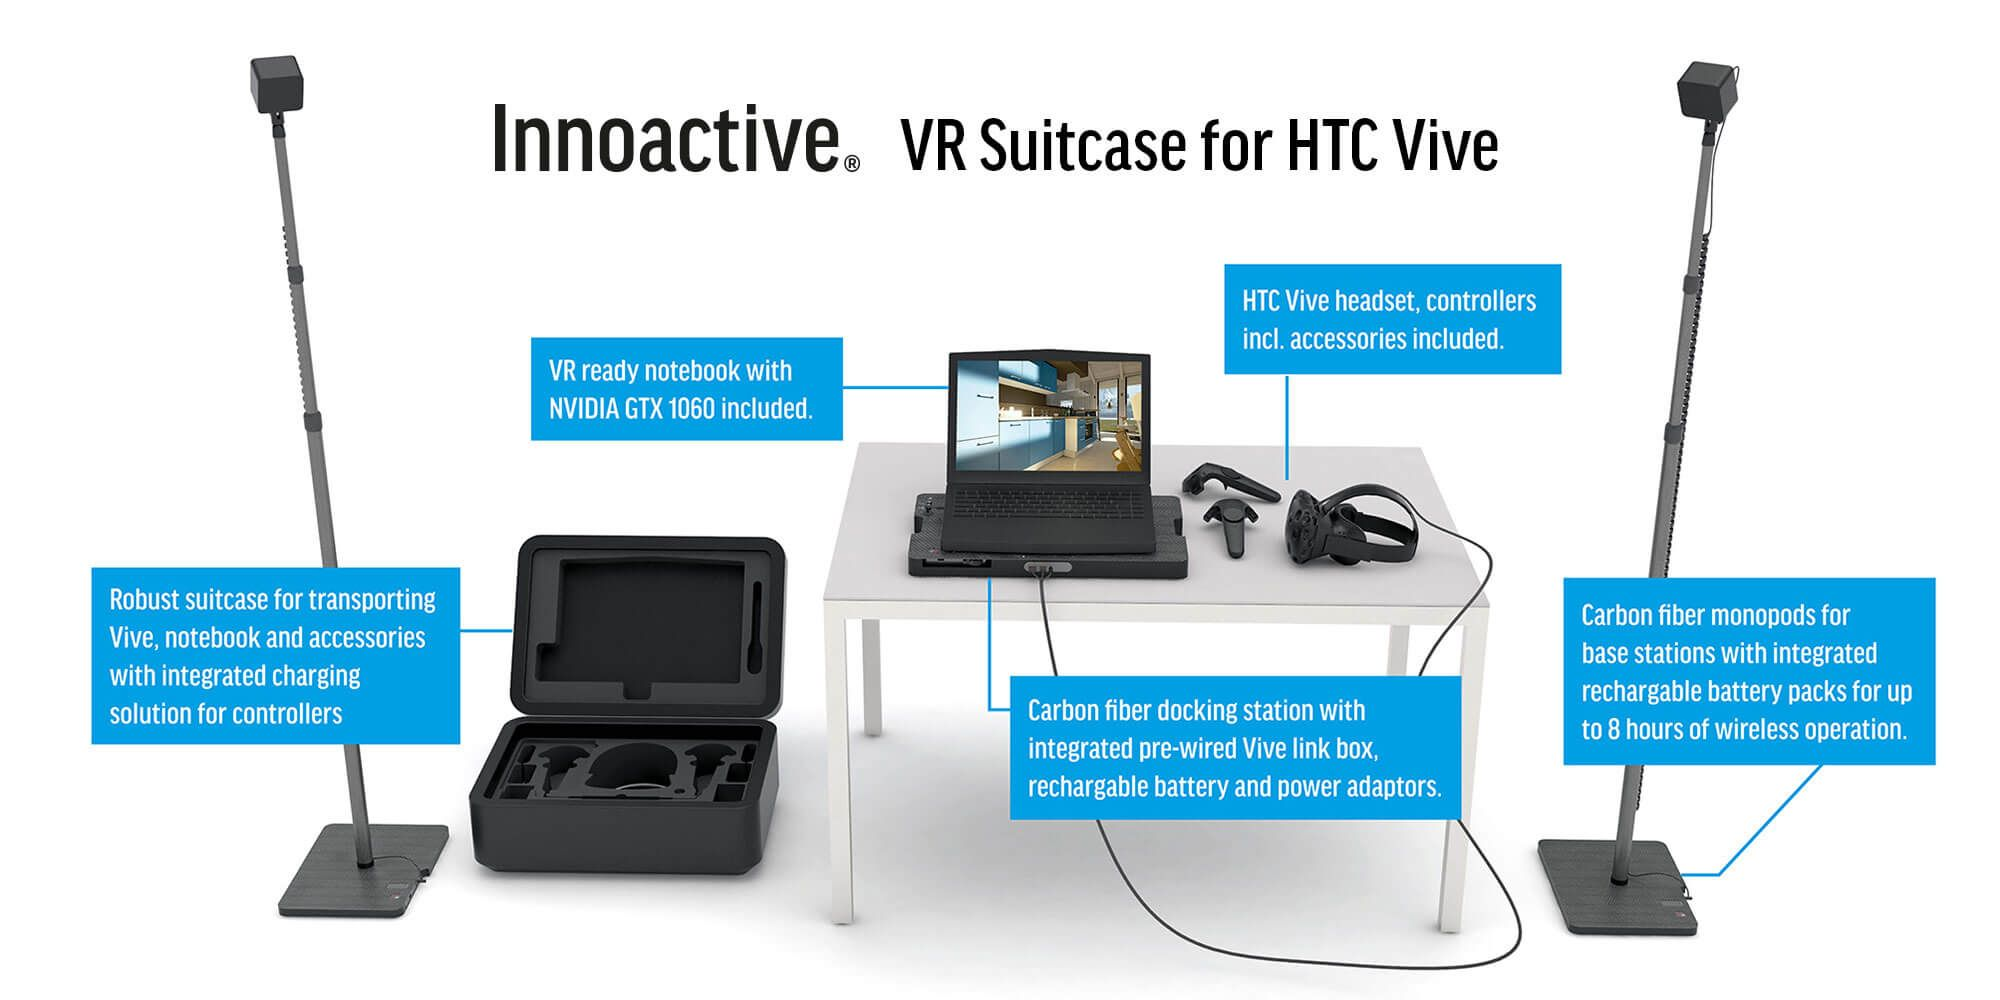 Innoactive S Vr Suitcase Is A Portable Self Contained Htc Vive Demo Station Htc Vive Htc Station